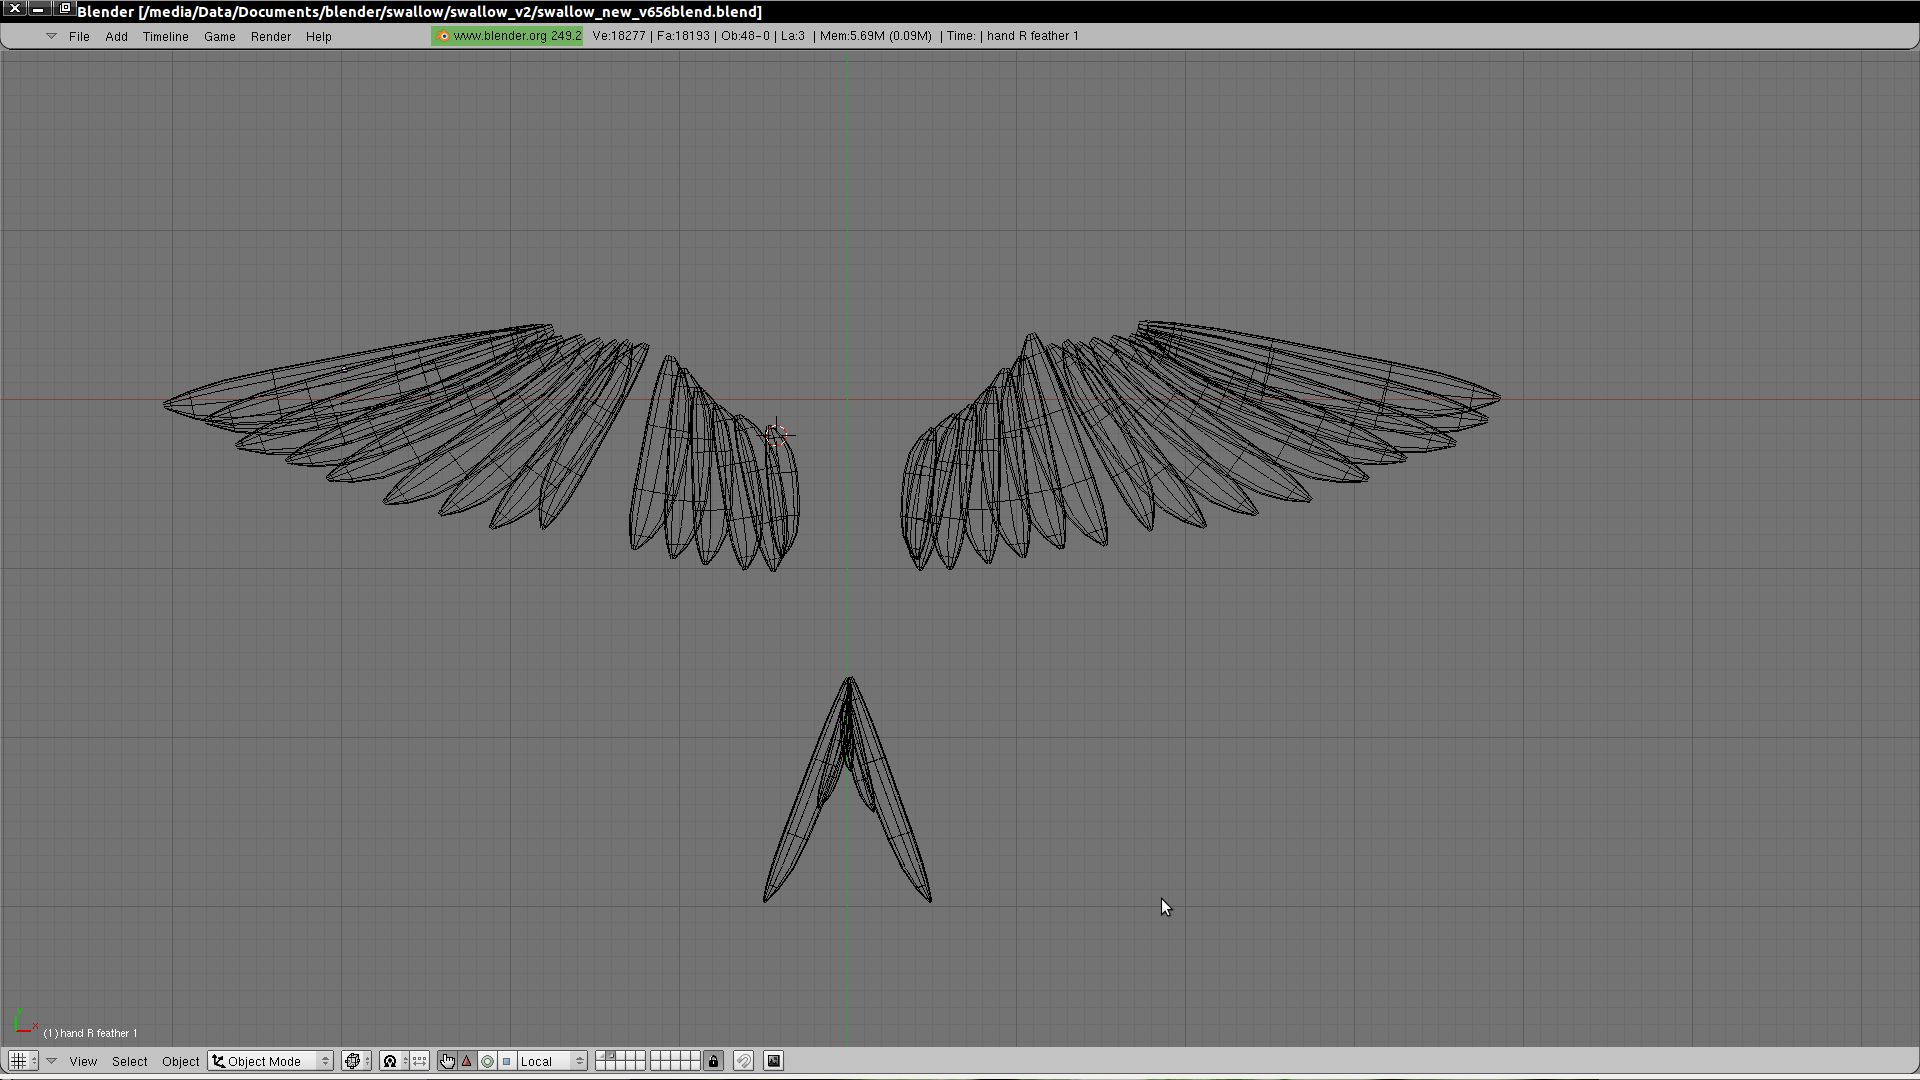 Each feather is modeled as a separate softbody, so it will bend according to air friction when moved.